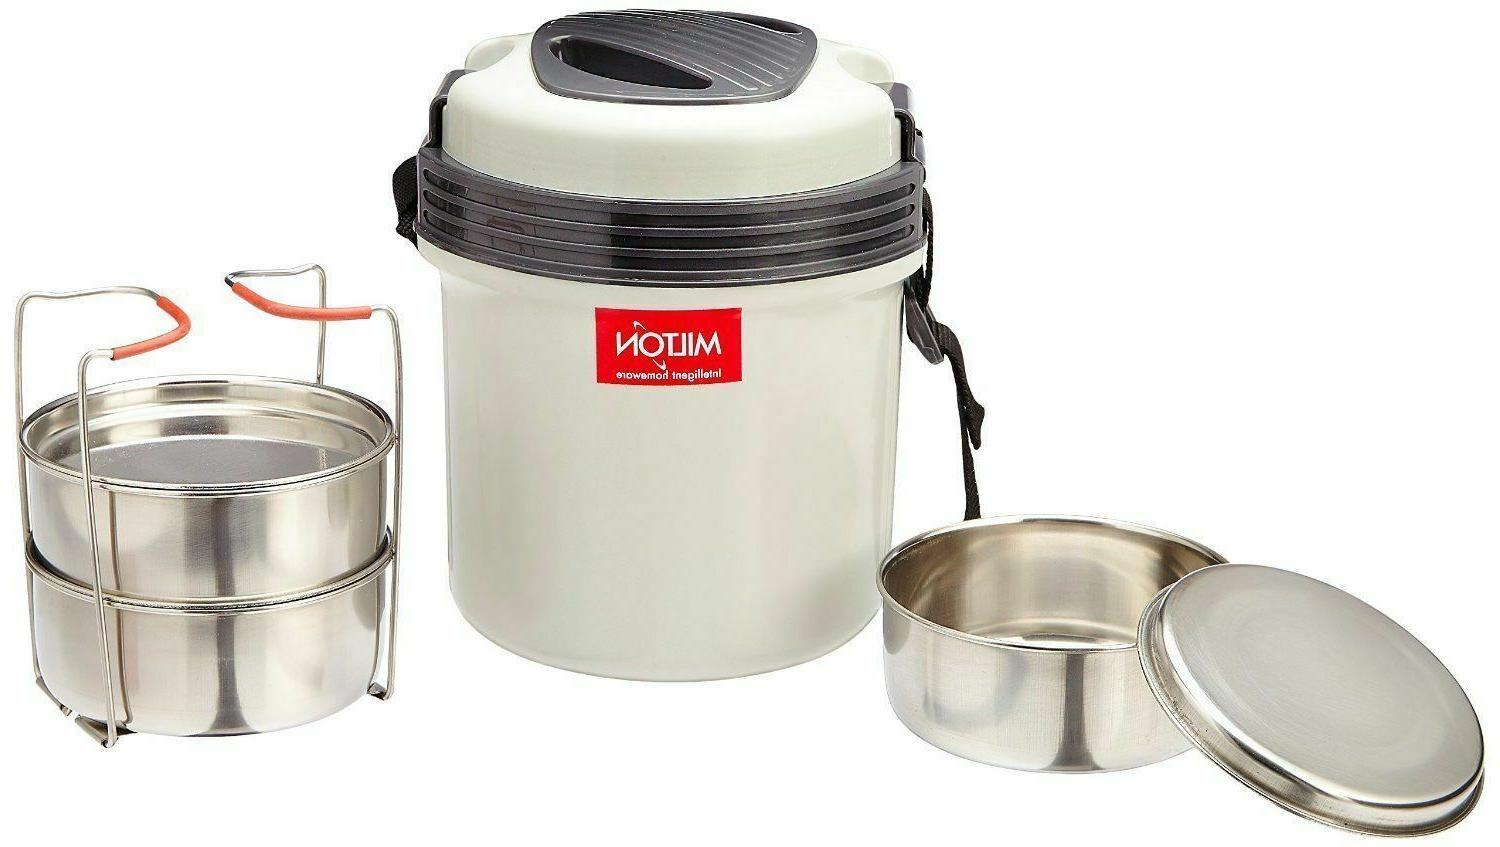 MILTON Electron Hot Box Electric Tiffin -Set MJ